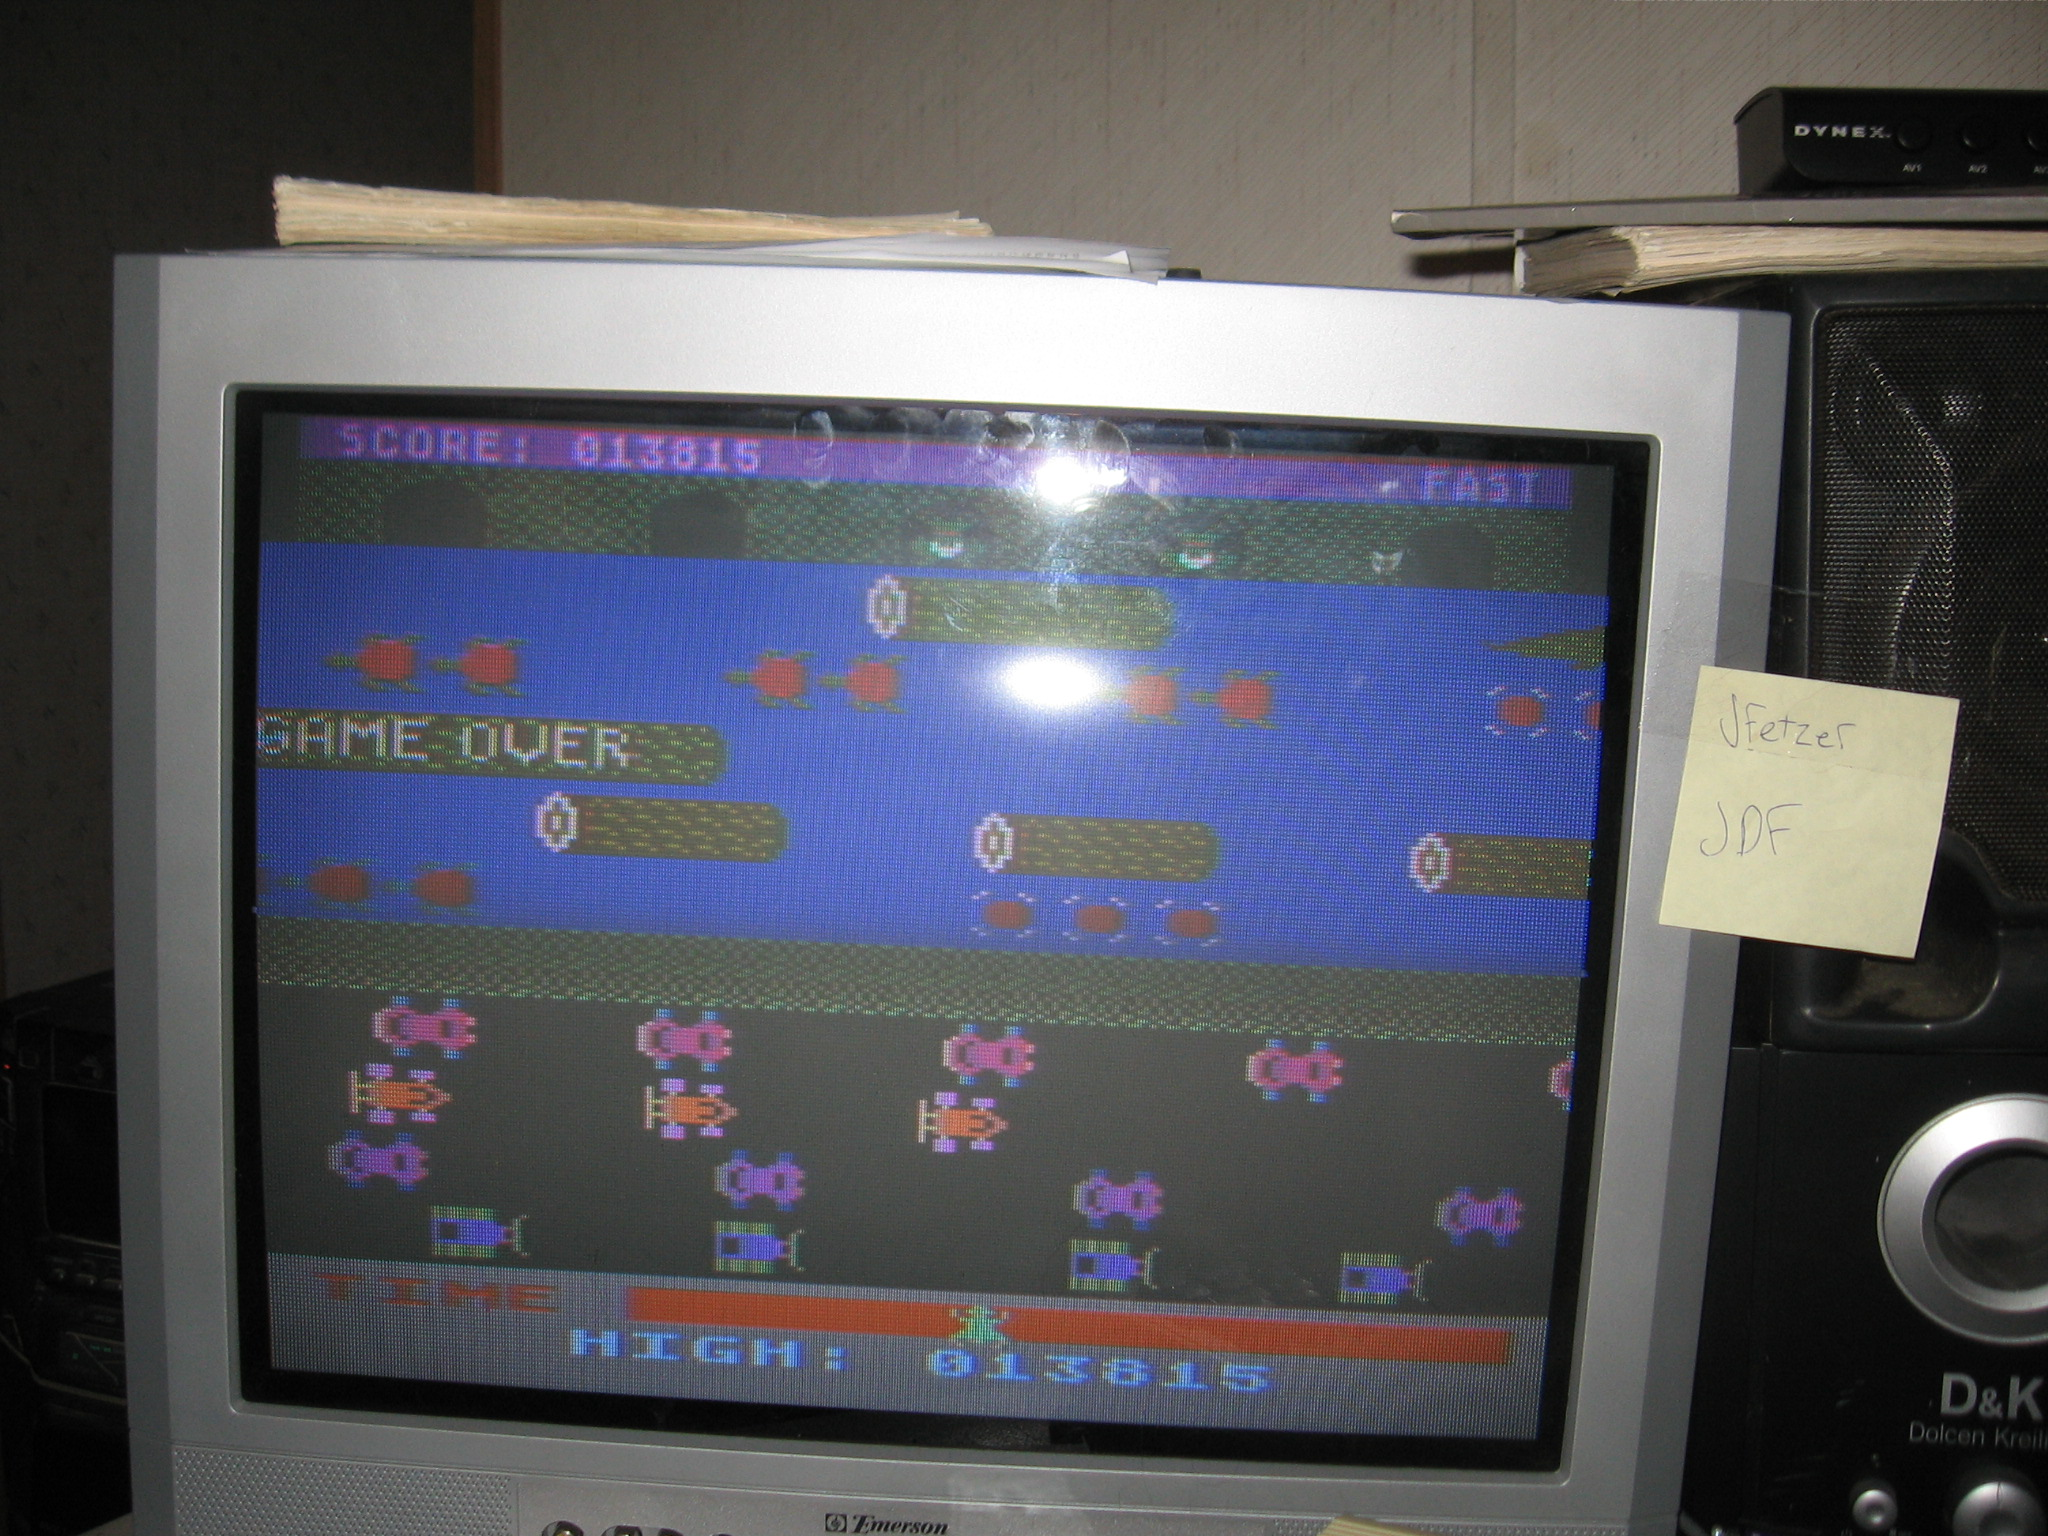 jfetzer: Frogger: Fast [Sierra Online/John Harris] (Atari 400/800/XL/XE) 13,815 points on 2014-06-19 19:36:11